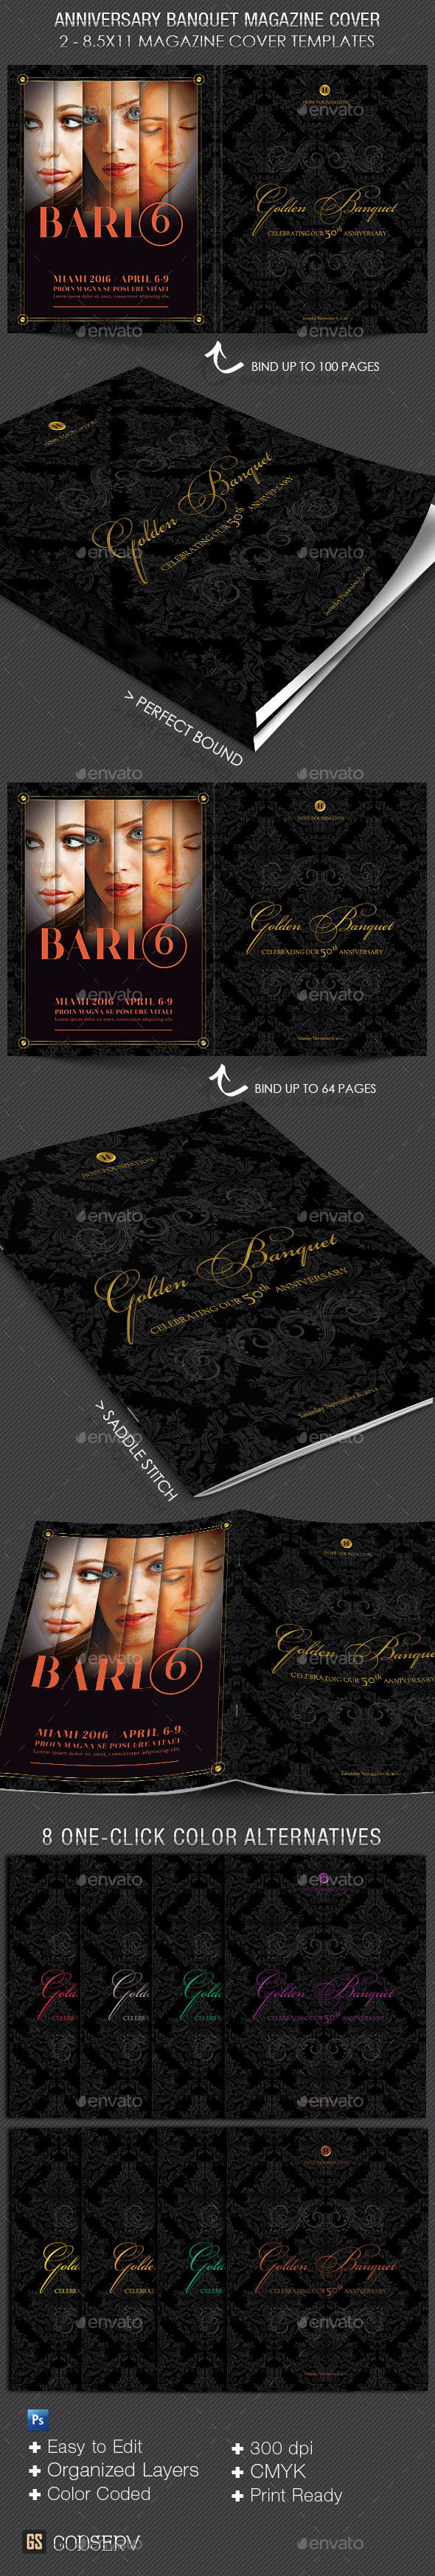 GraphicRiver Anniversary Banquet Magazine Cover Template 9560633